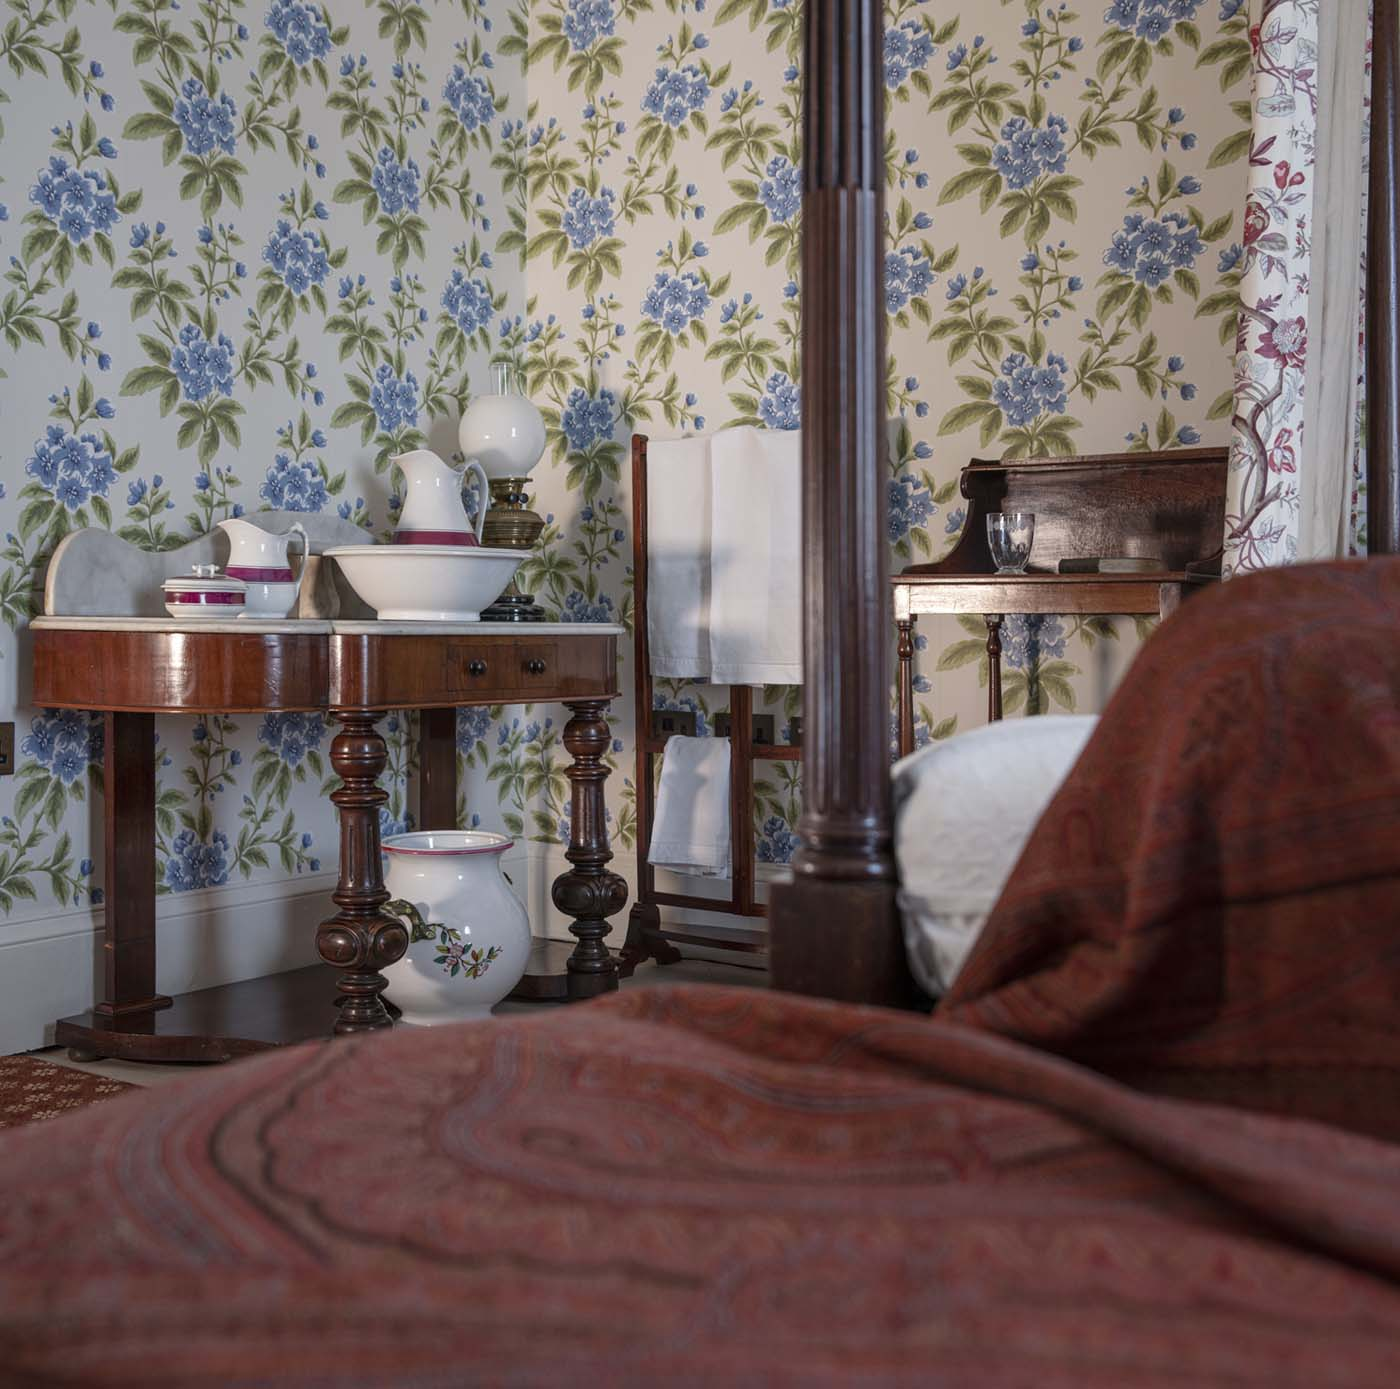 photo of a Victorian bedroom